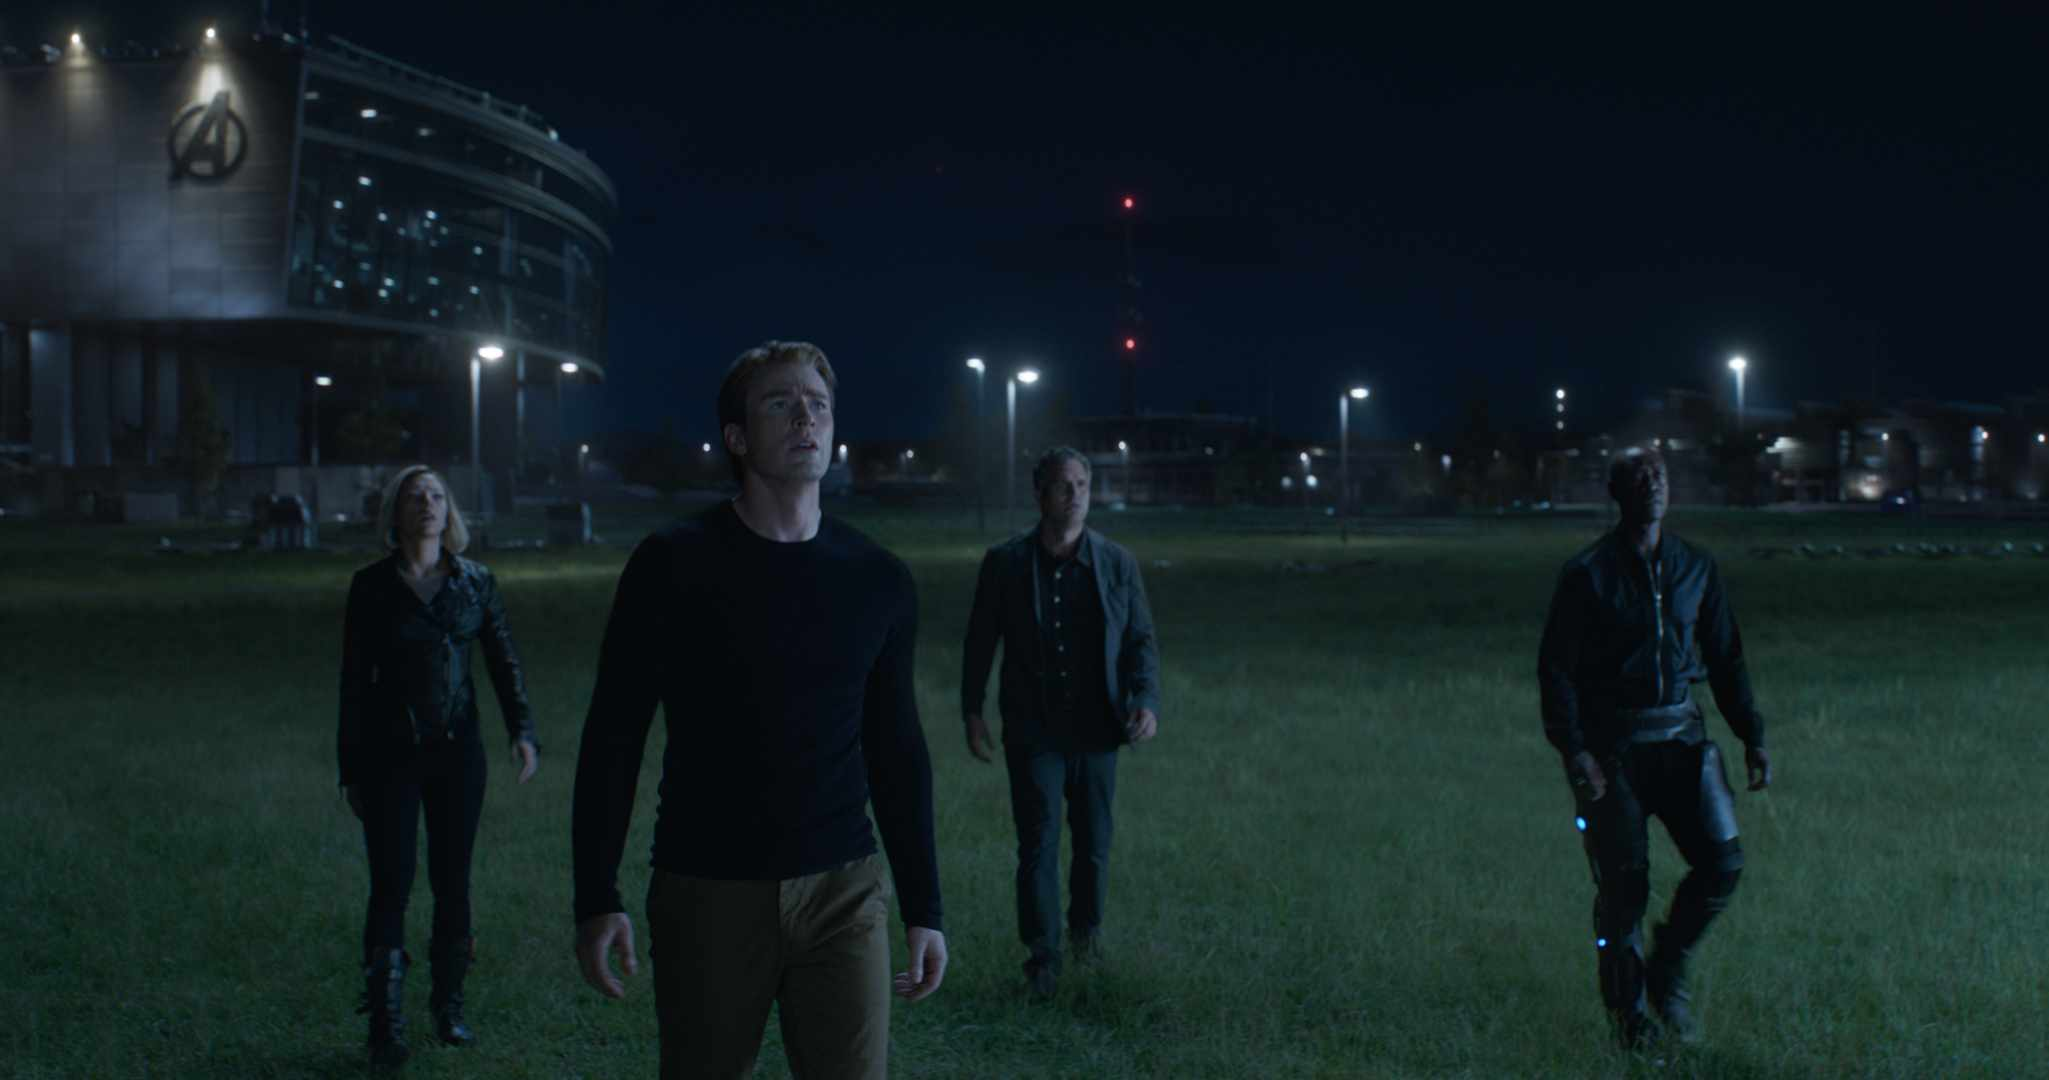 Marvel Studios' AVENGERS: ENDGAME..L to R: Black Widow/Natasha Romanoff (Scarlett Johansson), Captain America/Steve Rogers (Chris Evans), Bruce Banner (Mark Ruffalo), and War Machine/James Rhodes (Don Cheadle)..Photo: Film Frame..©Marvel Studios 2019